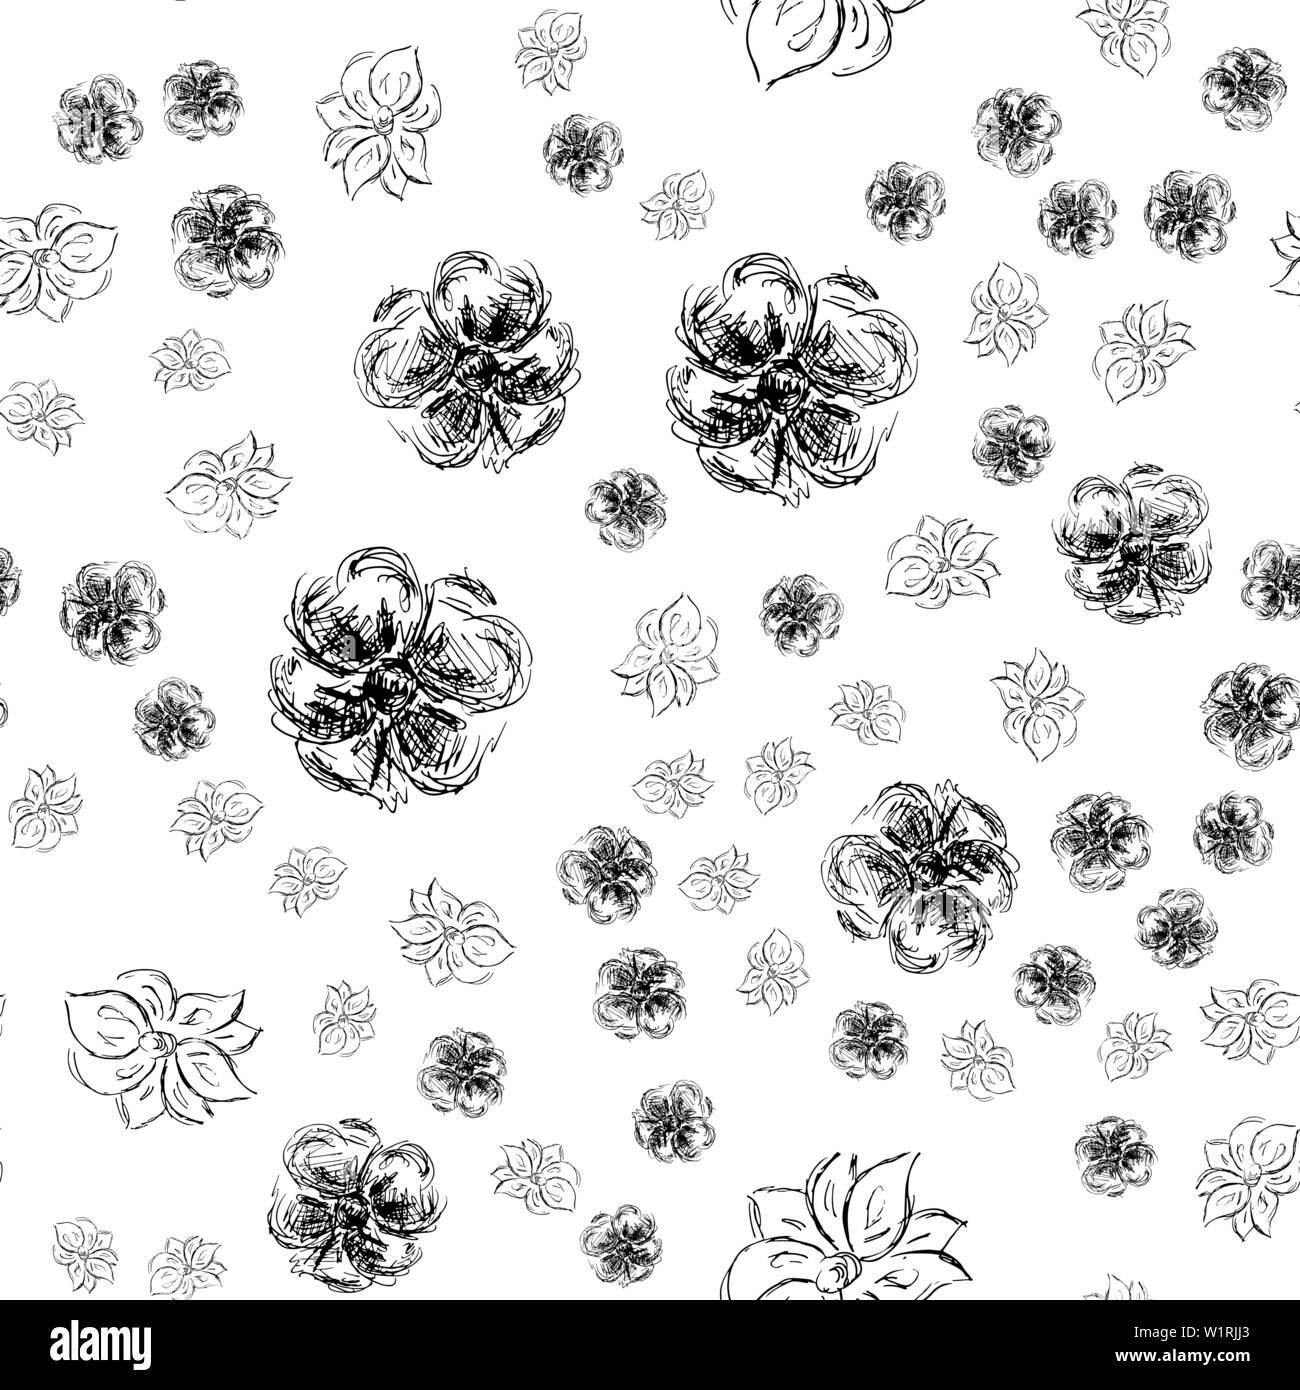 Seamless Hand Drawn Pattern Of Abstract Rose Flowers